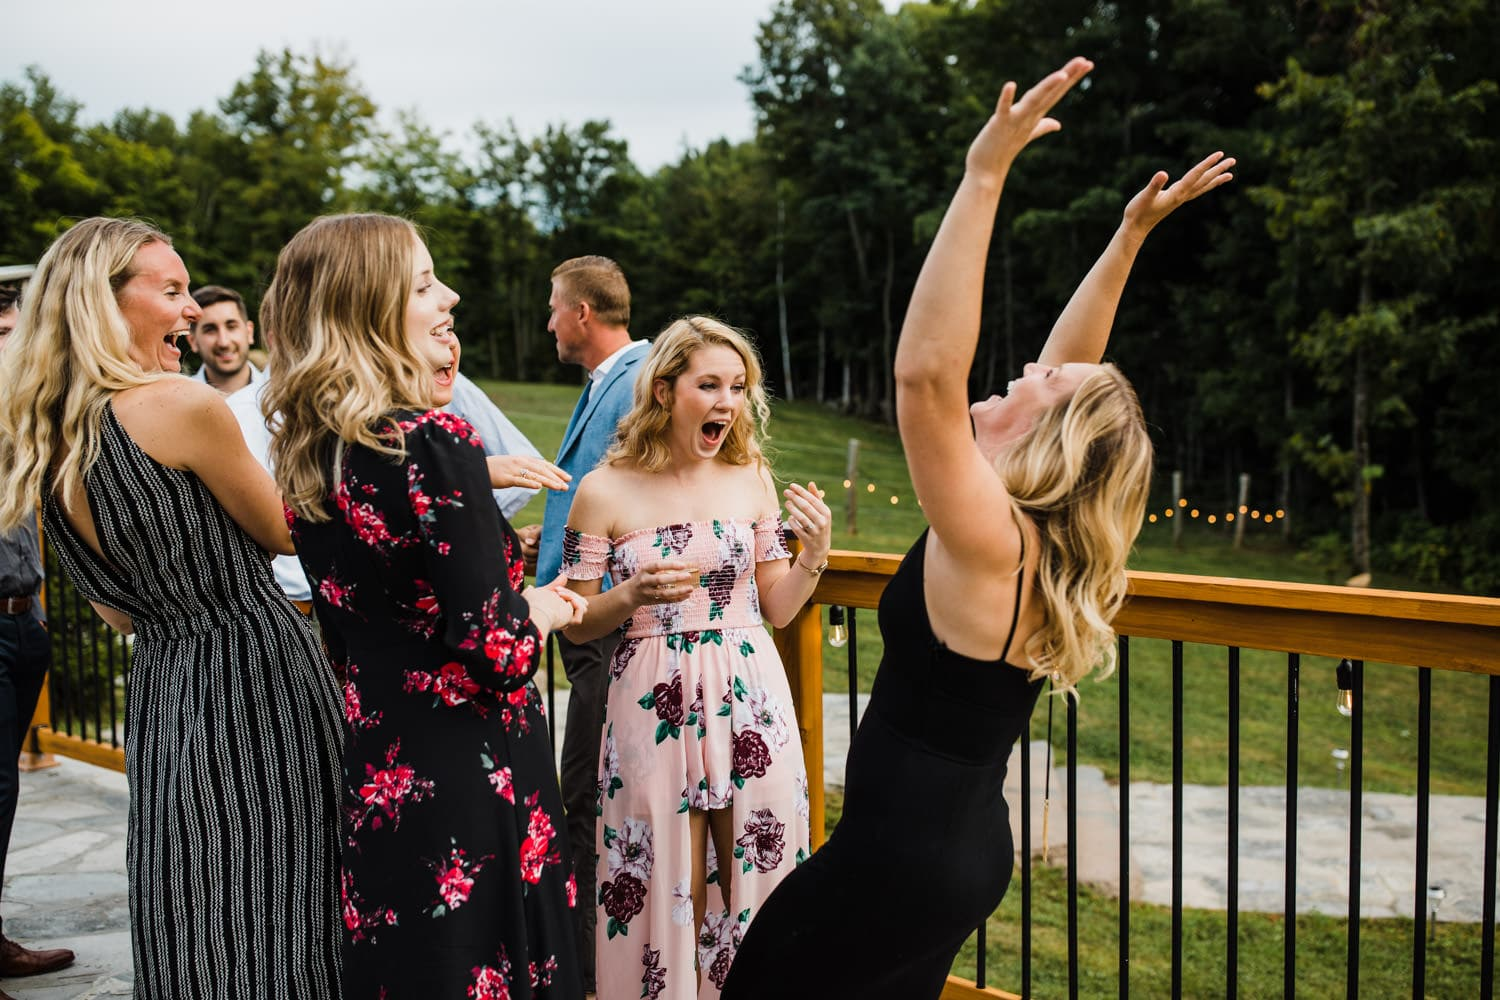 guests react after outdoor surprise wedding ceremony - ottawa wedding photographer